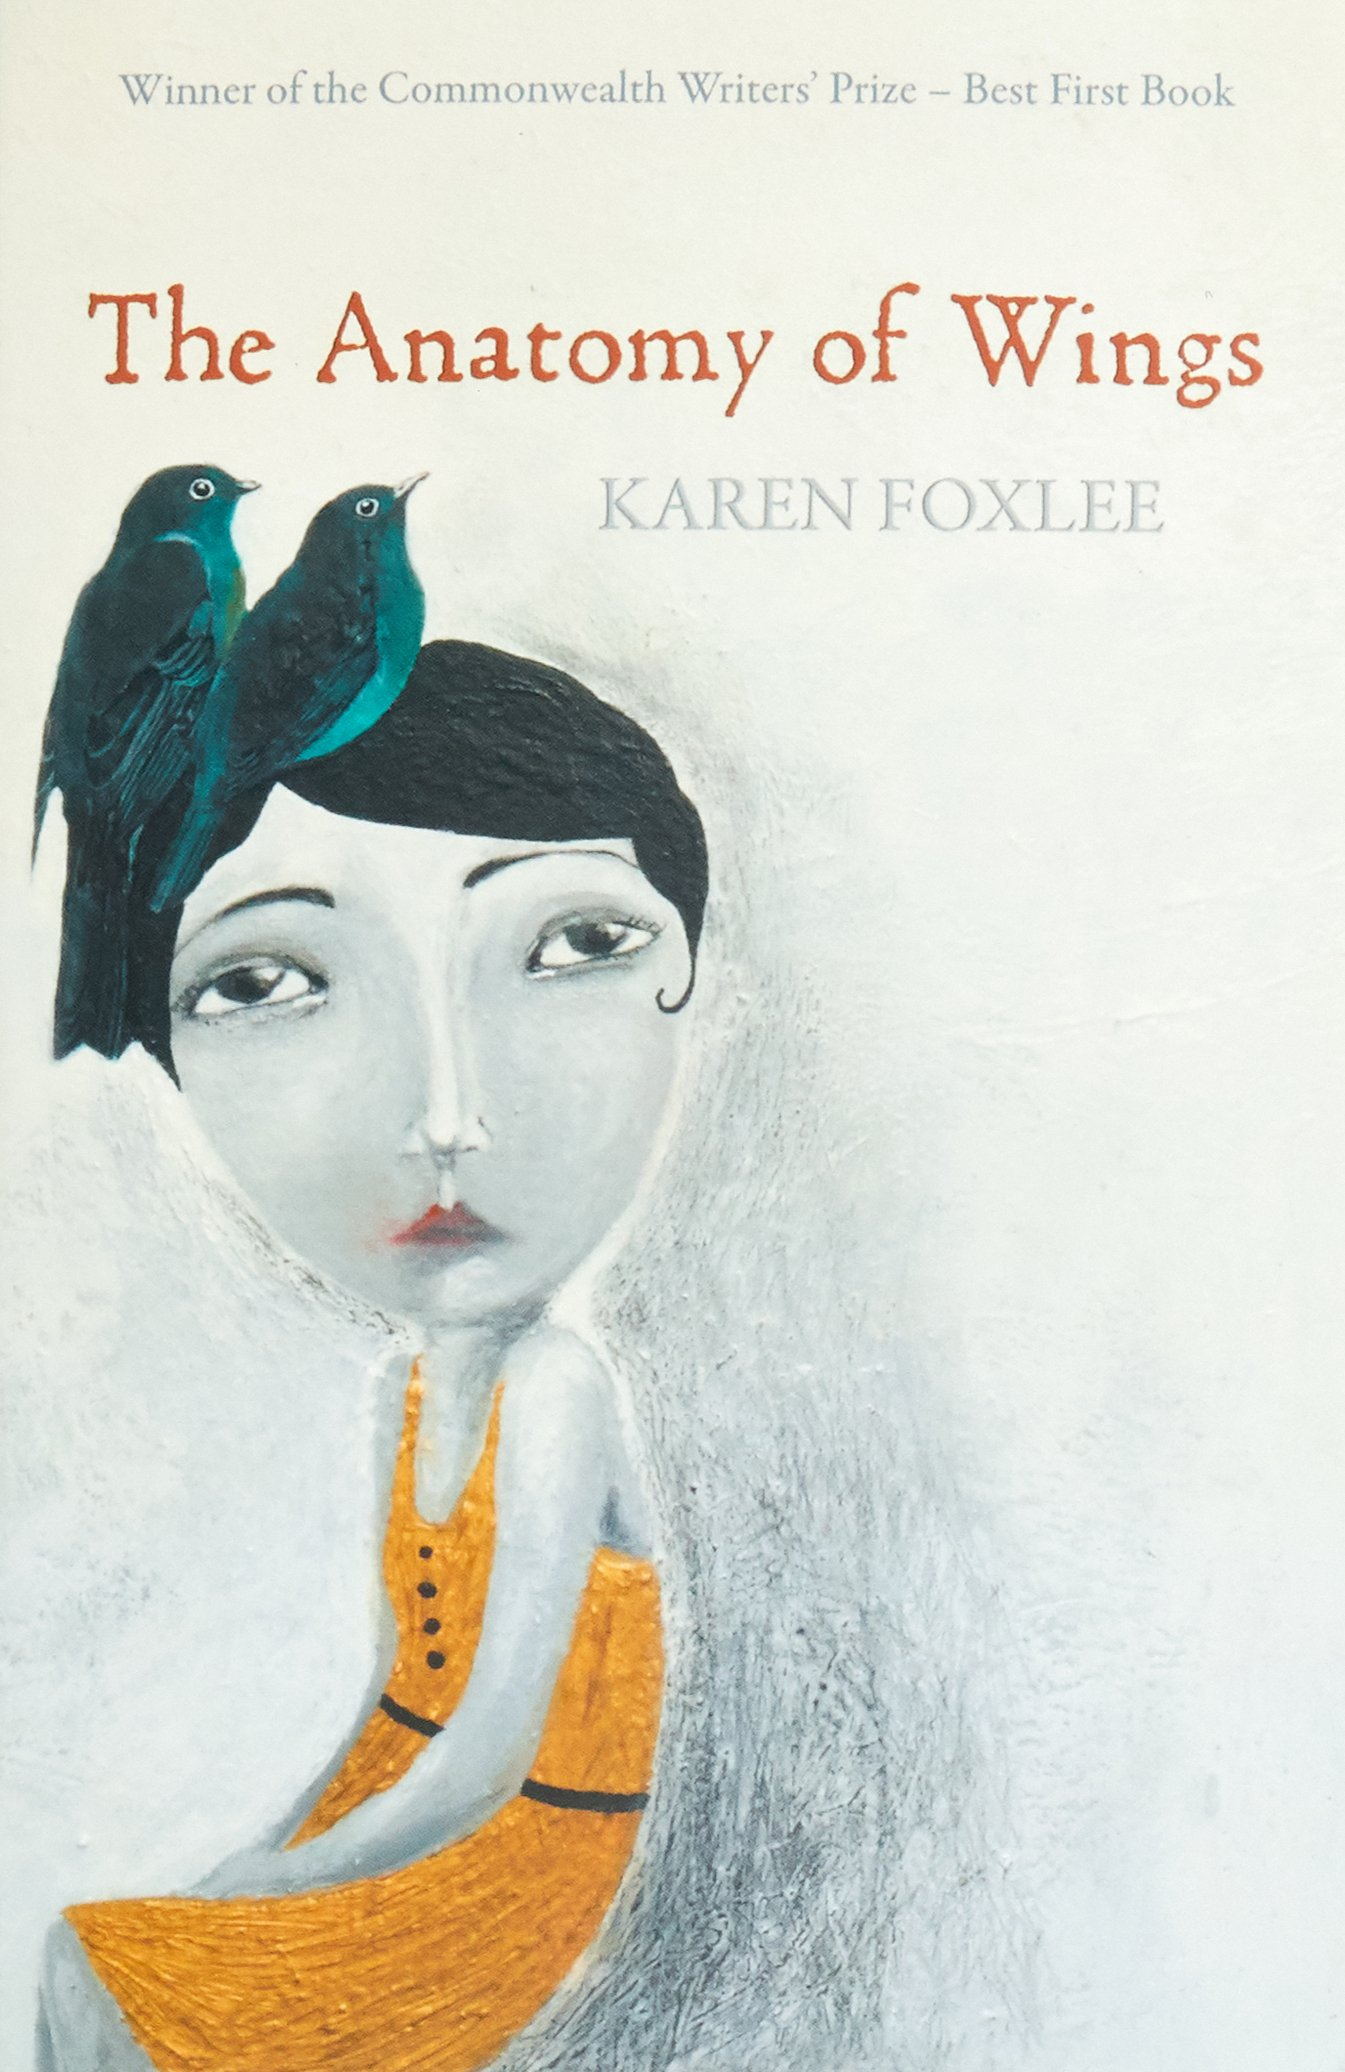 The Anatomy of Wings: 9780702236983: Amazon.com: Books